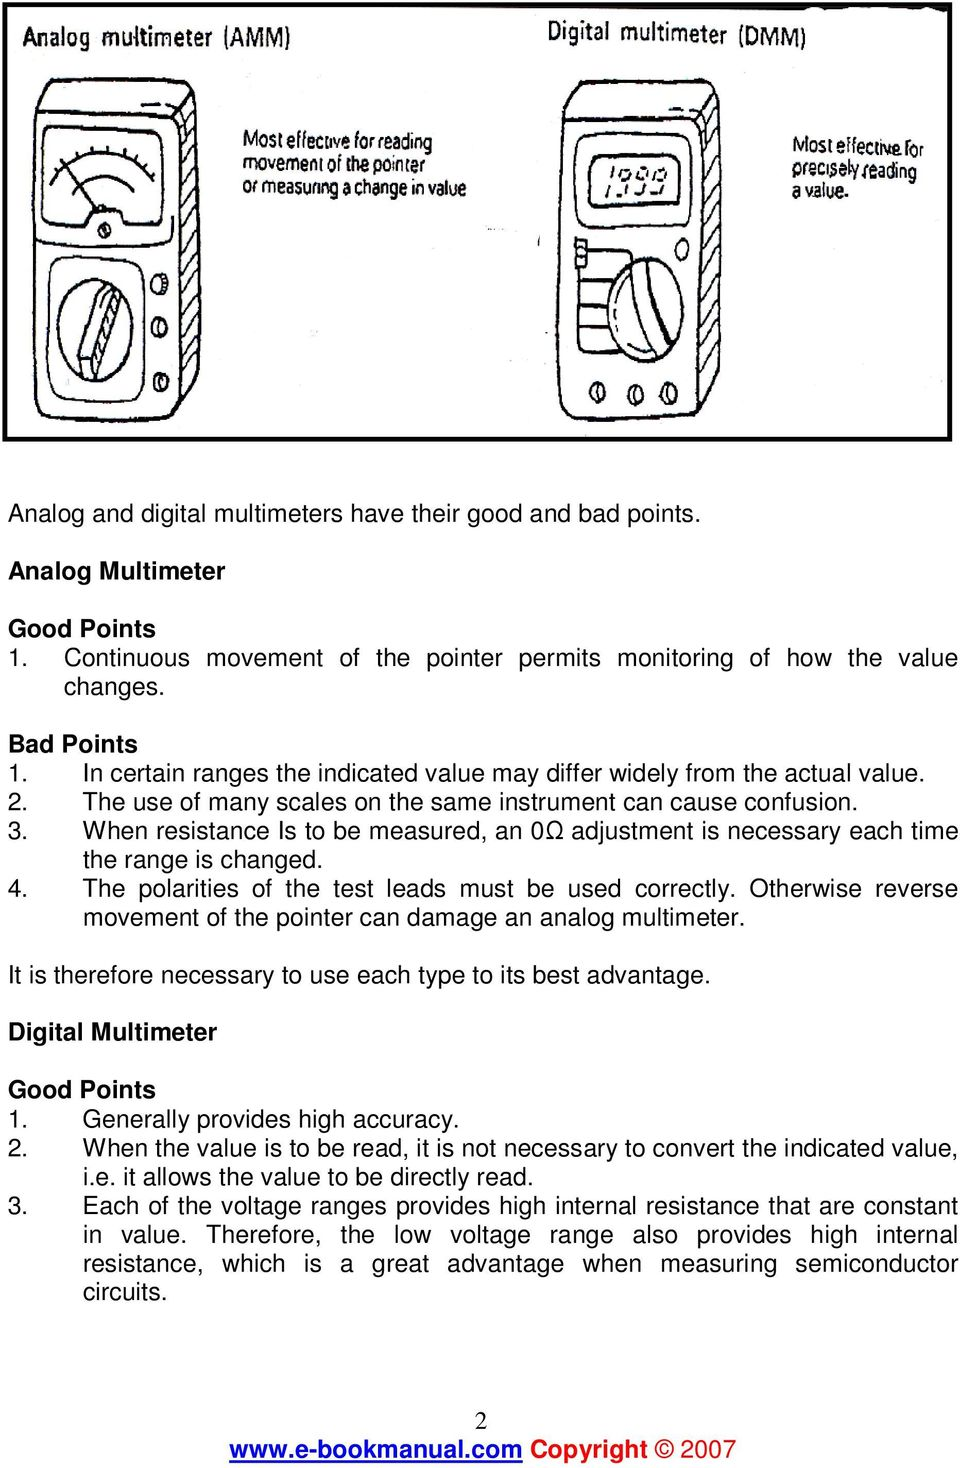 HOW TO USE MULTIMETER  COMPILE BY: Dzulautotech - PDF